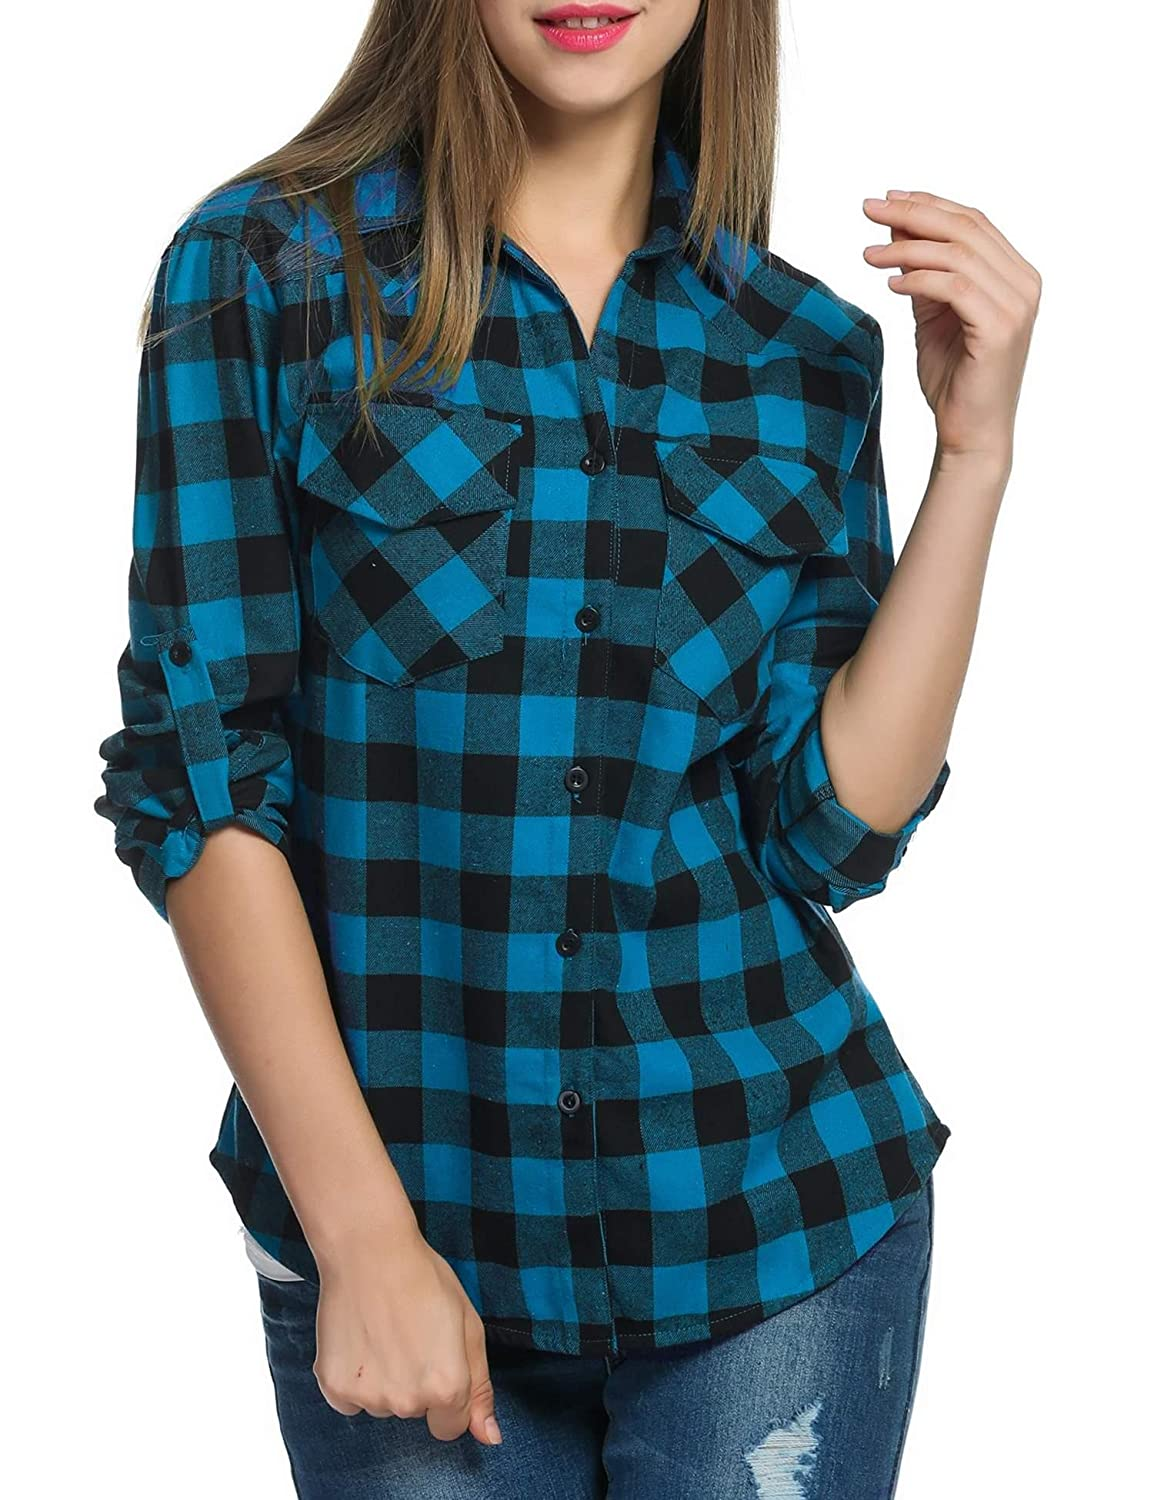 6ee9d28d Feature: Turn-Down Collar, Long Sleeve, Plaid Pattern, Button Down Shirt.Wrinkle-Resistant,  Button up Closure, Casual Loose Fit, Boyfriend Style .